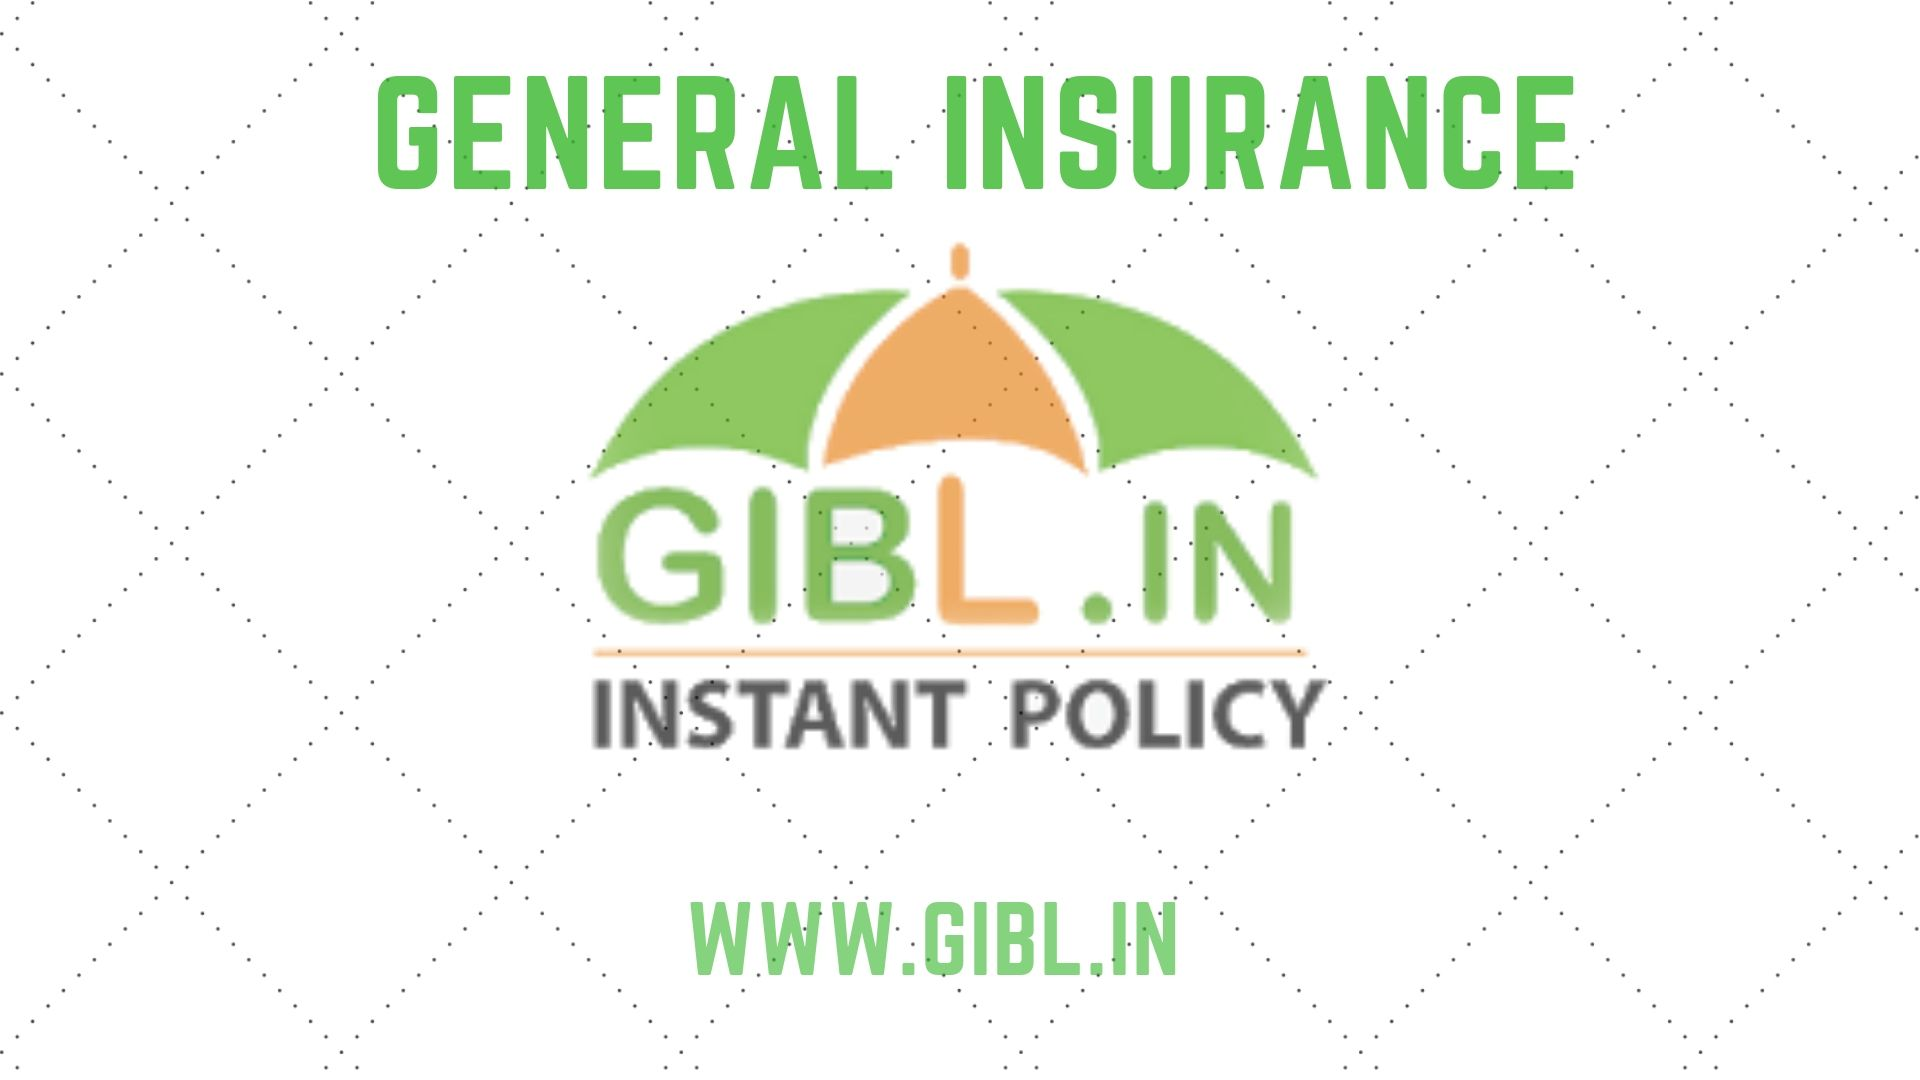 Bharti Axa offers all types of general insurance products